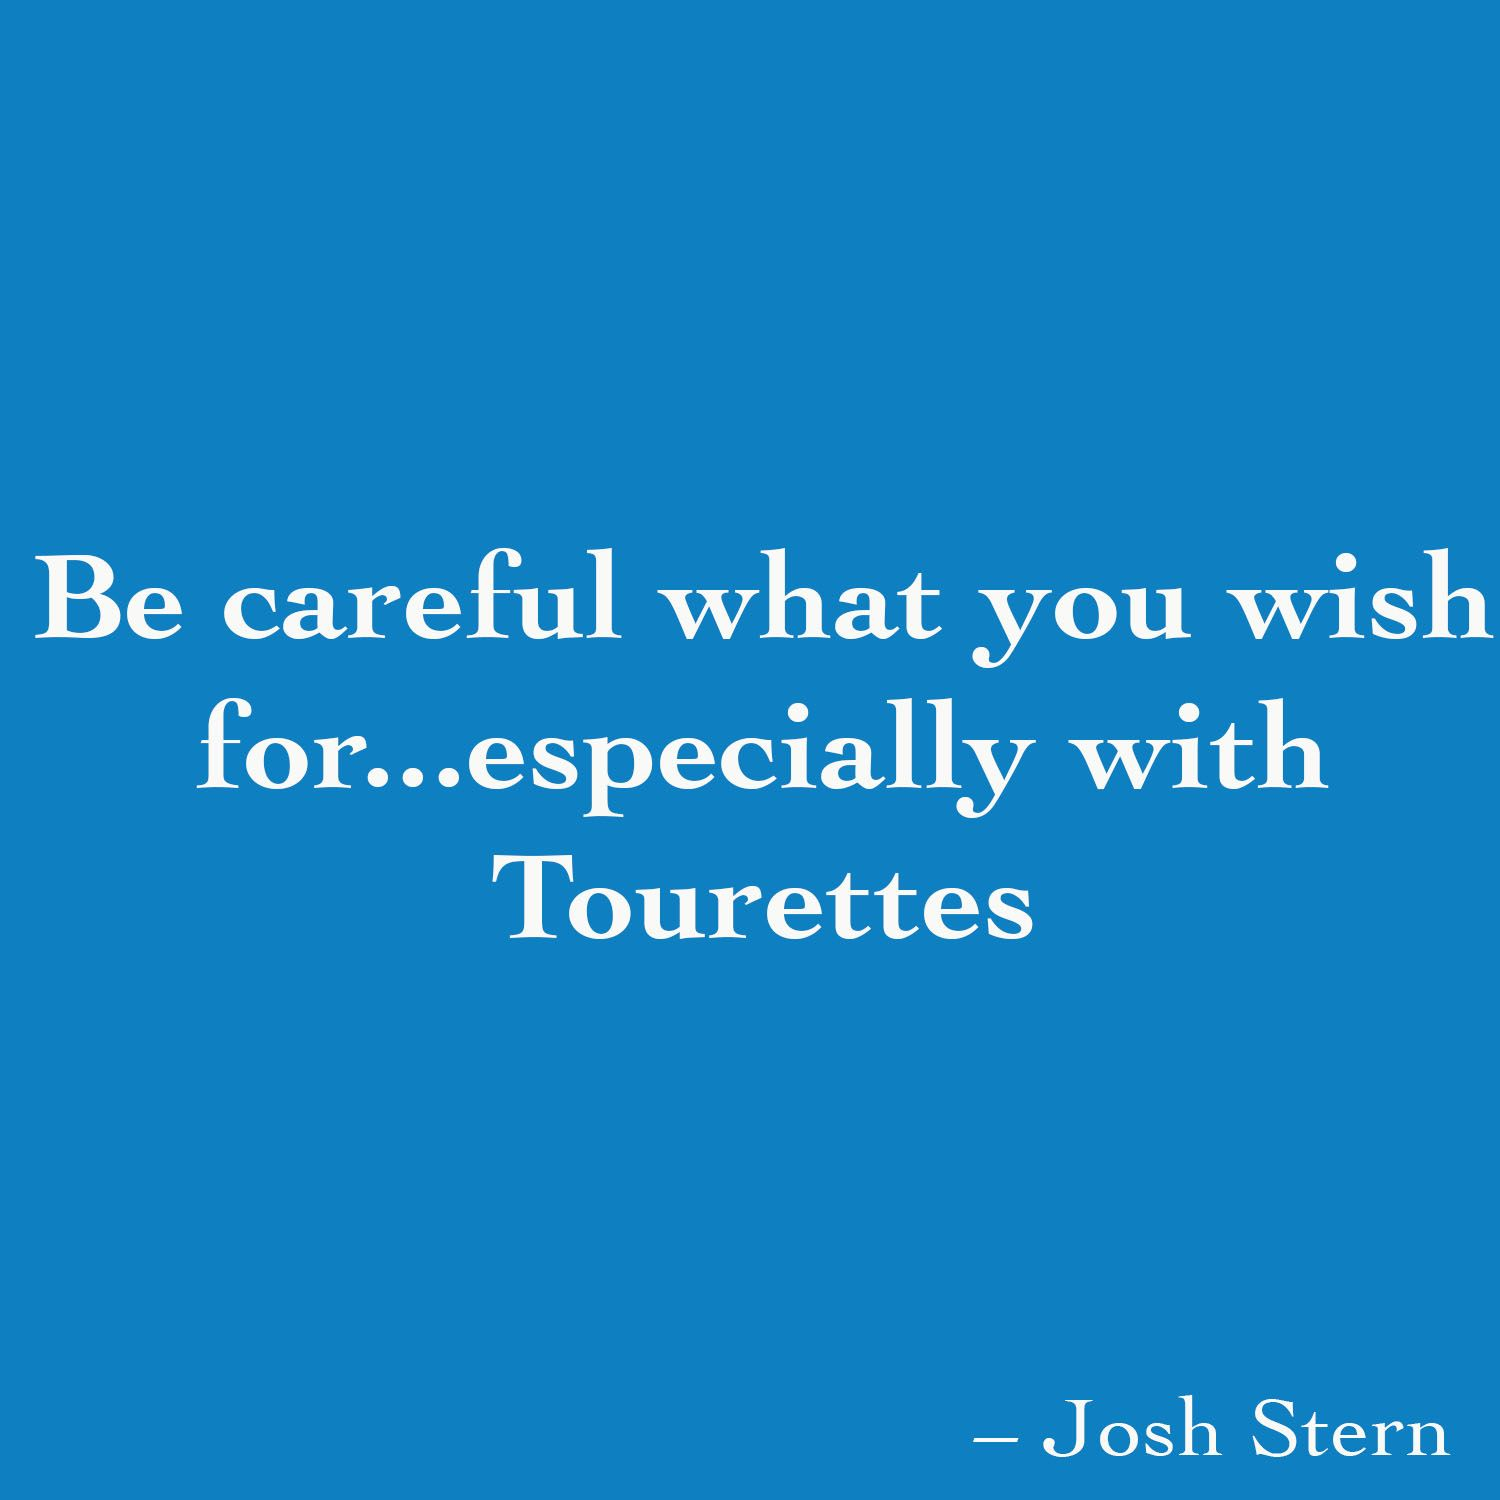 Be careful what you wish for...especially with Tourettes